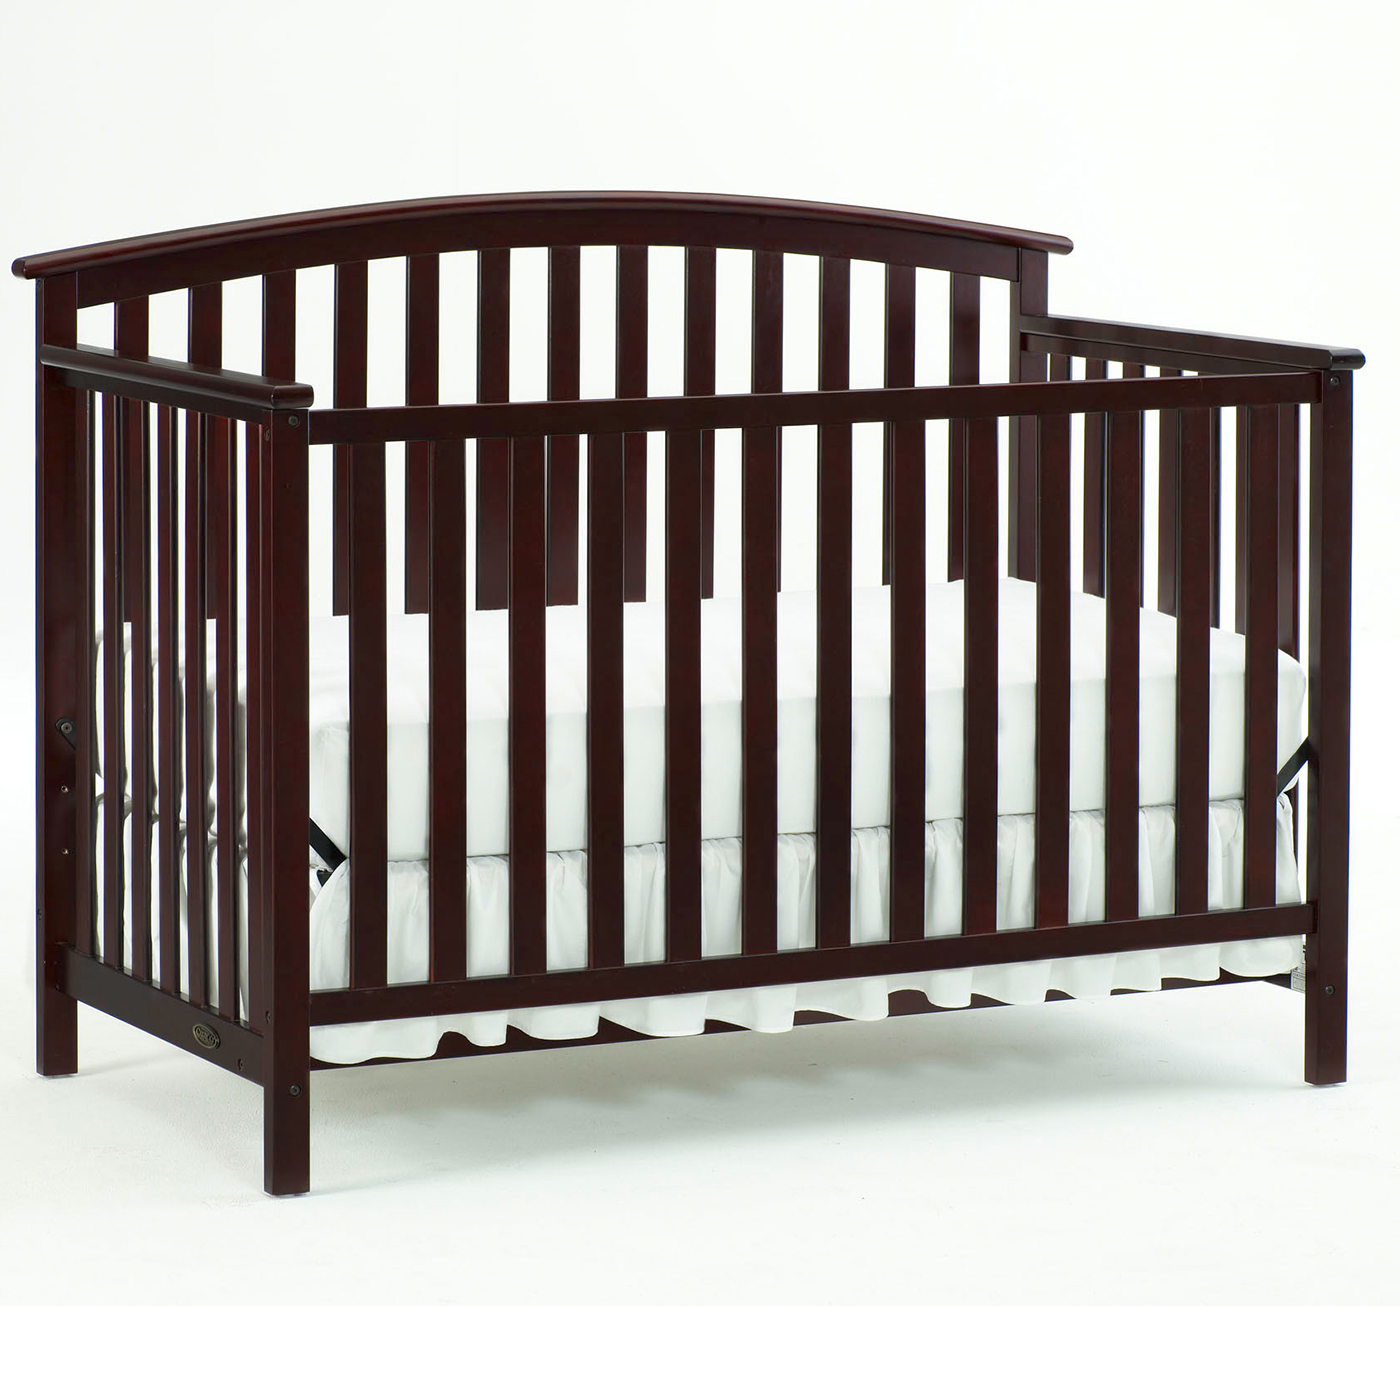 Graco Cribs Freeport 4 In 1 Convertible Crib With Mattress In Cherry FREE  SHIPPING